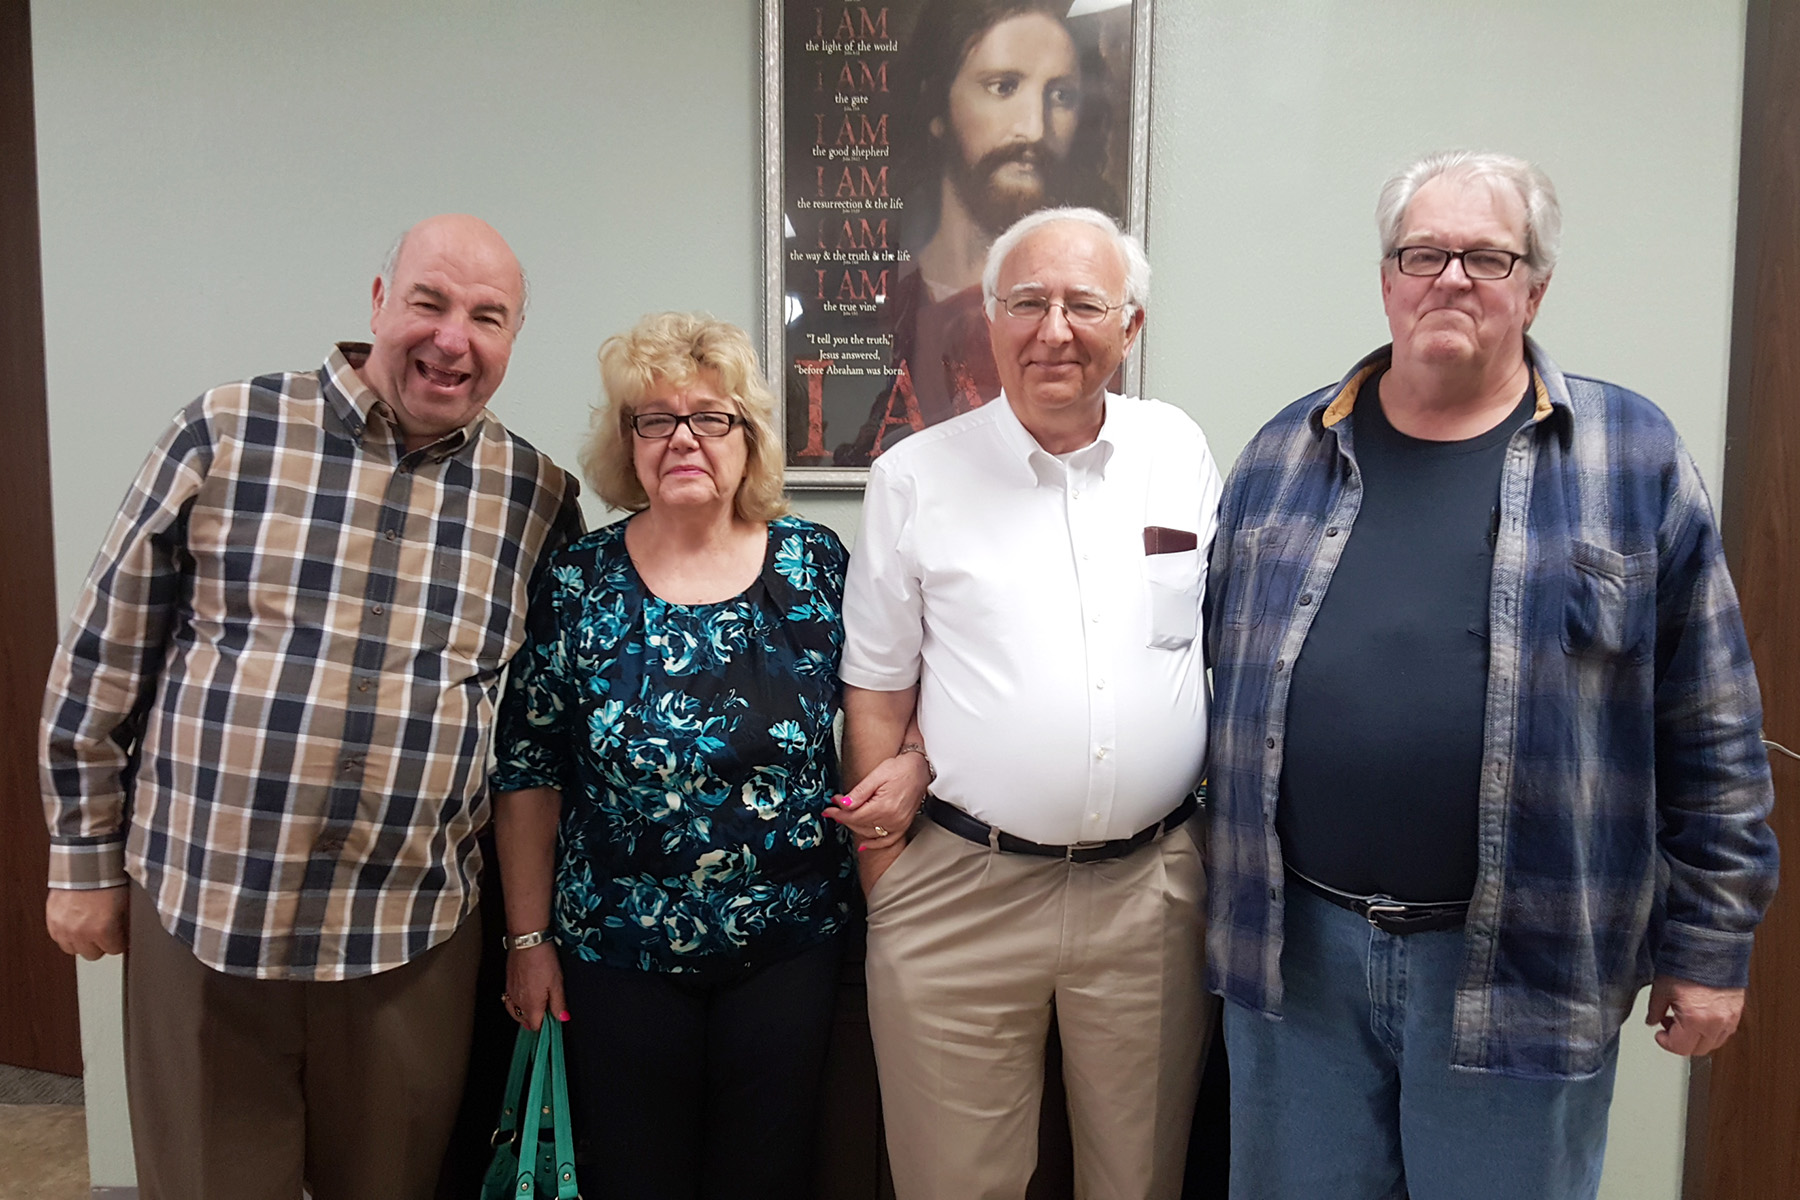 Pastor, Nancy, Tom, and Douglas